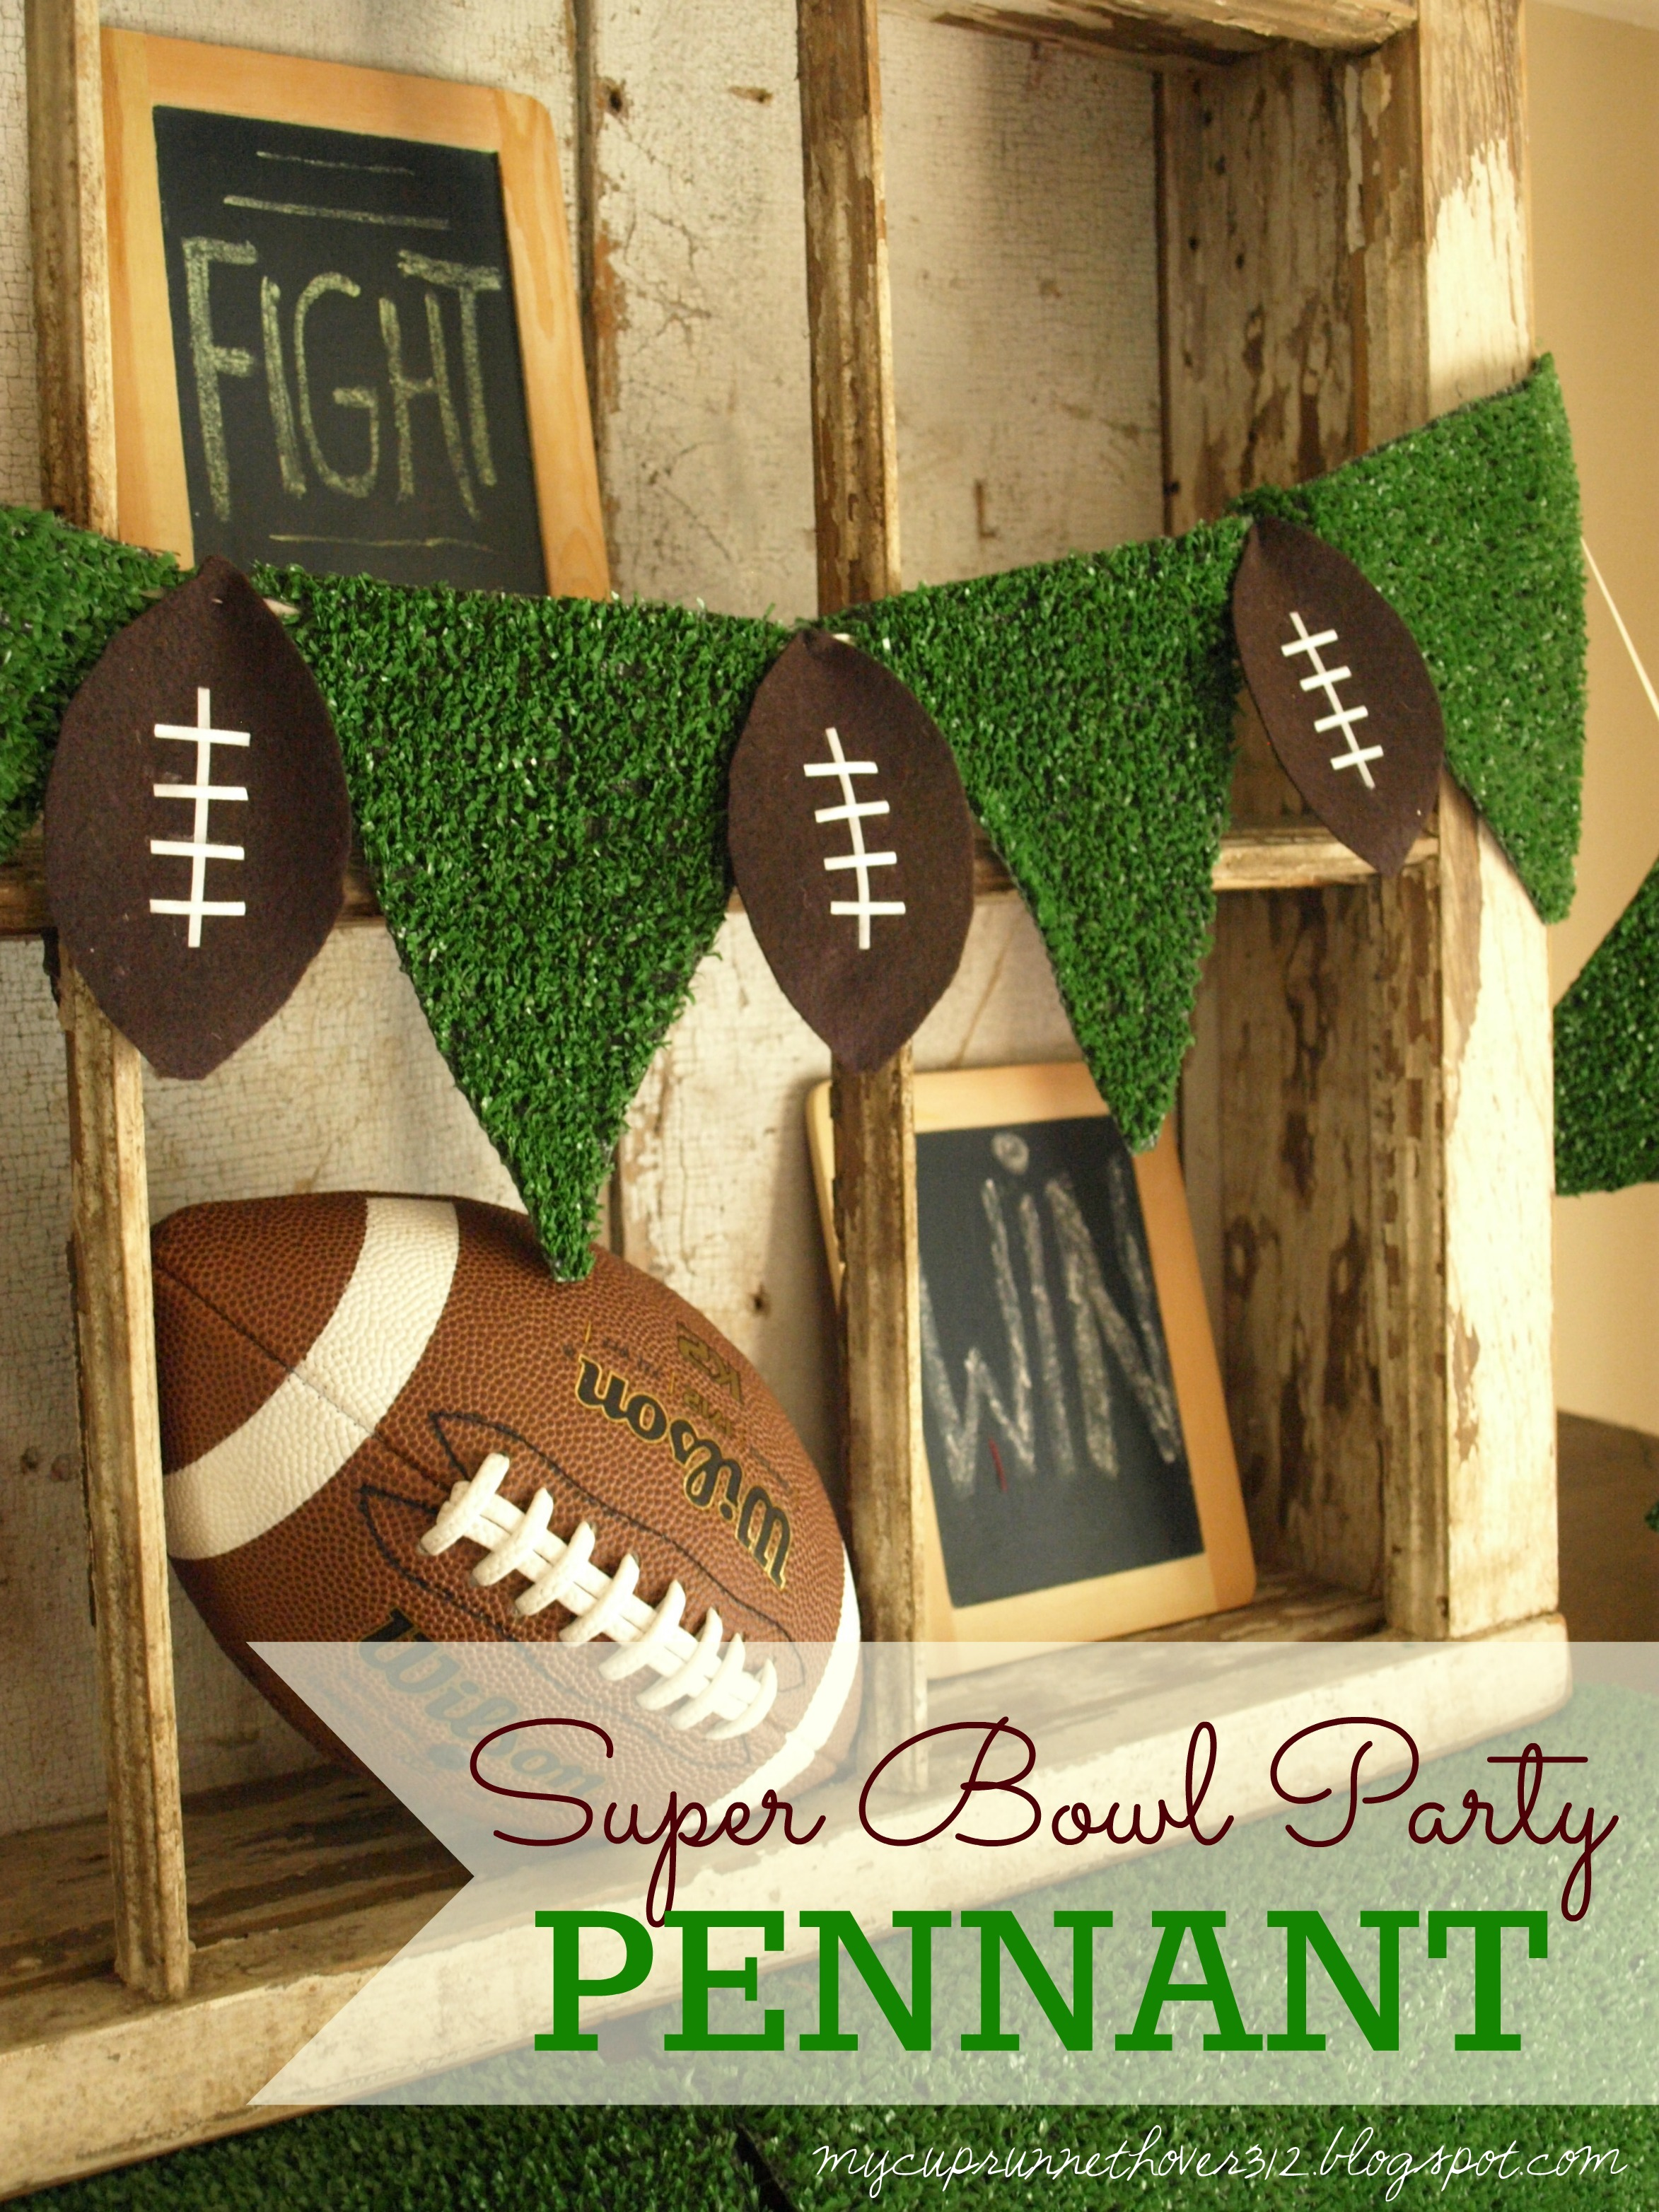 This Football Pennant Is The Perfect Decoration For Your Super Bowl Party Easy To Make